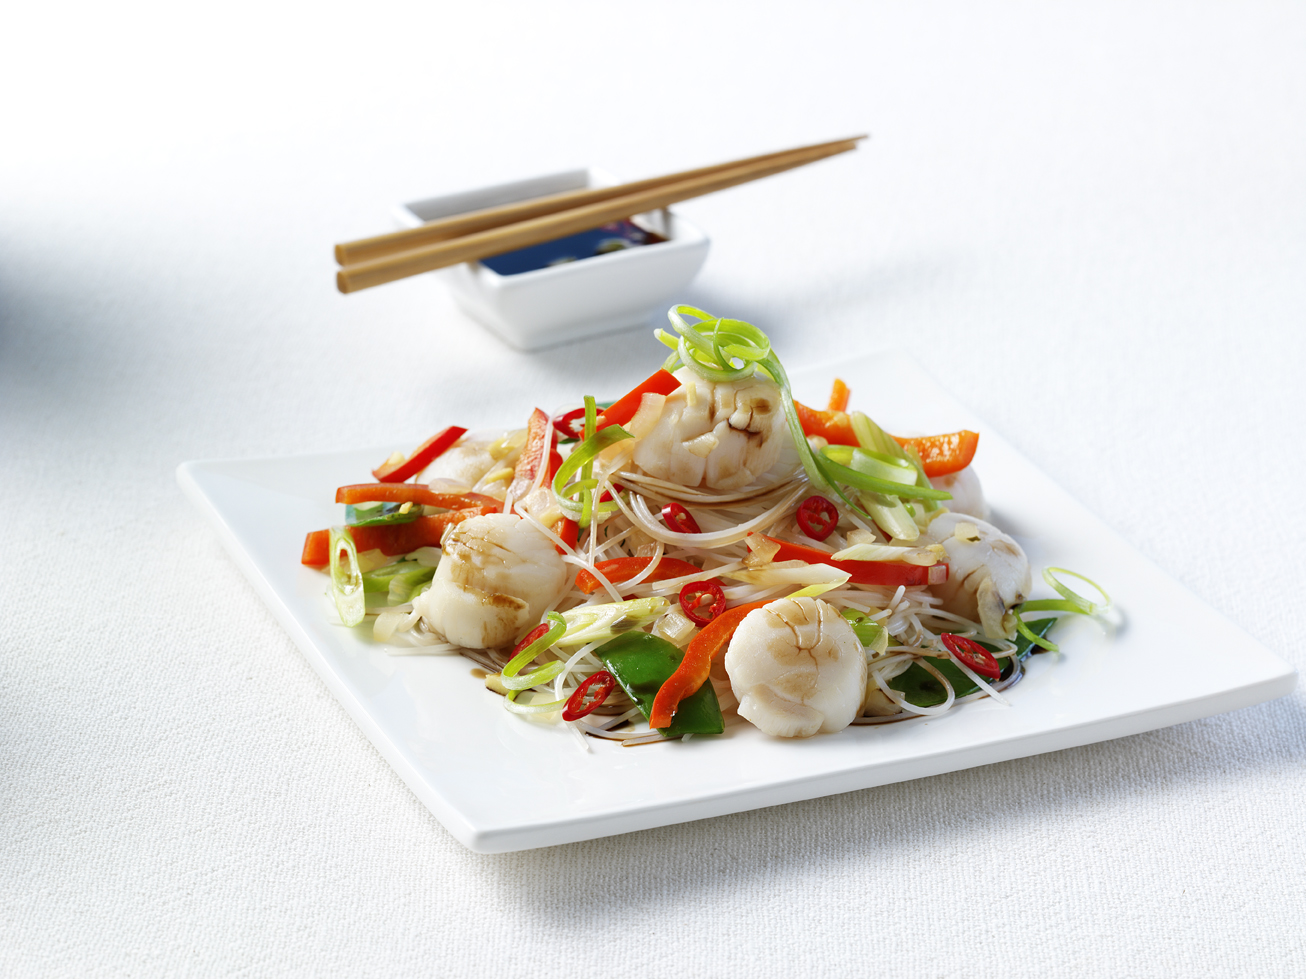 Dinner recipes: Chilli scallop and noodles